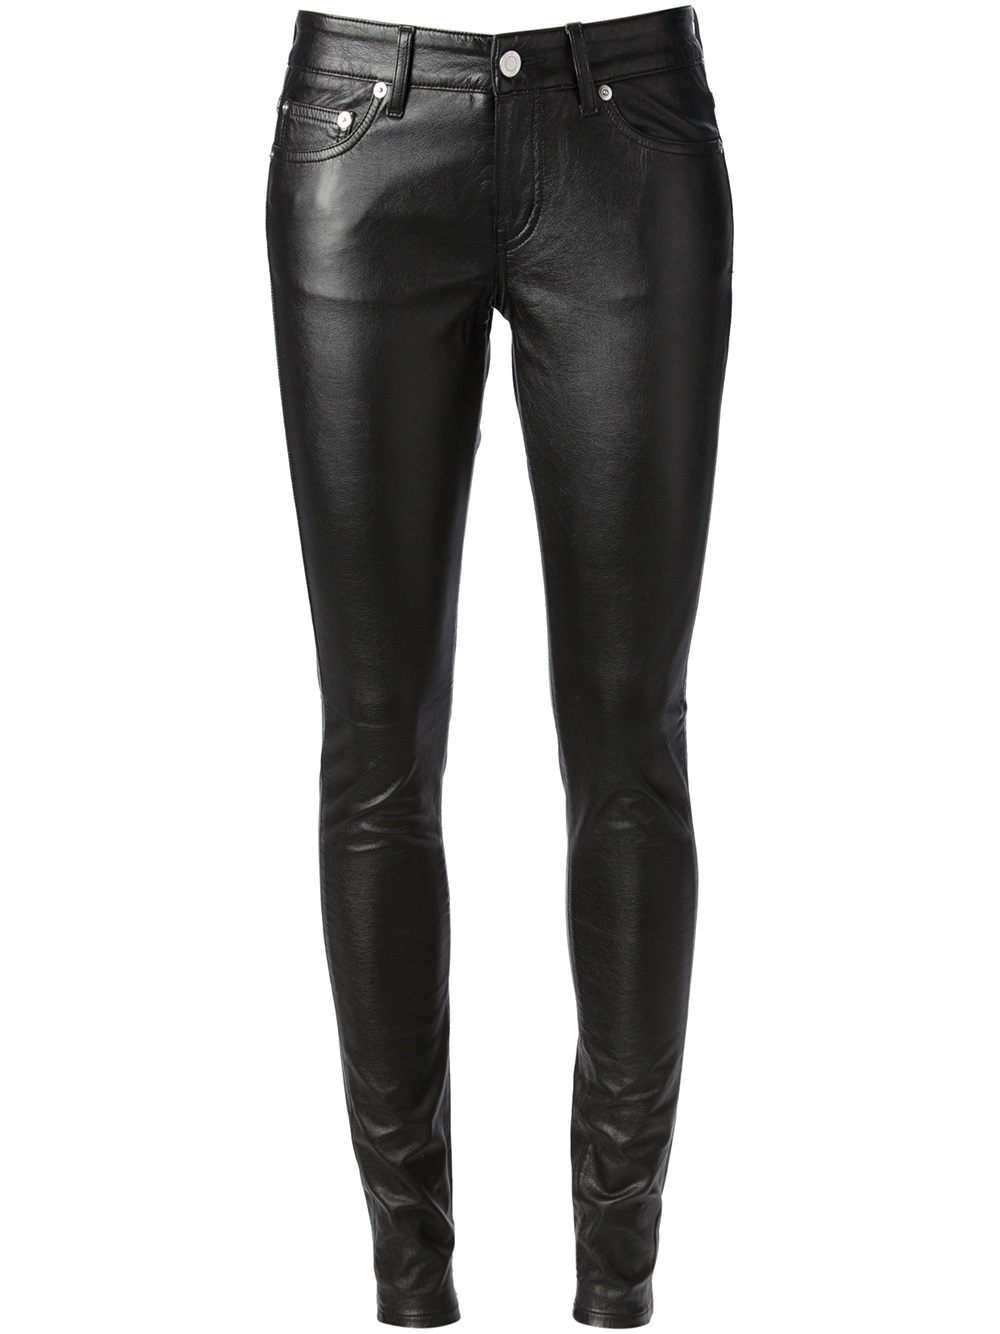 trousers Jennyfer Women's skinny faux leather trousers in black, with 5 pockets and a zip and button fastening. Retouched photo.